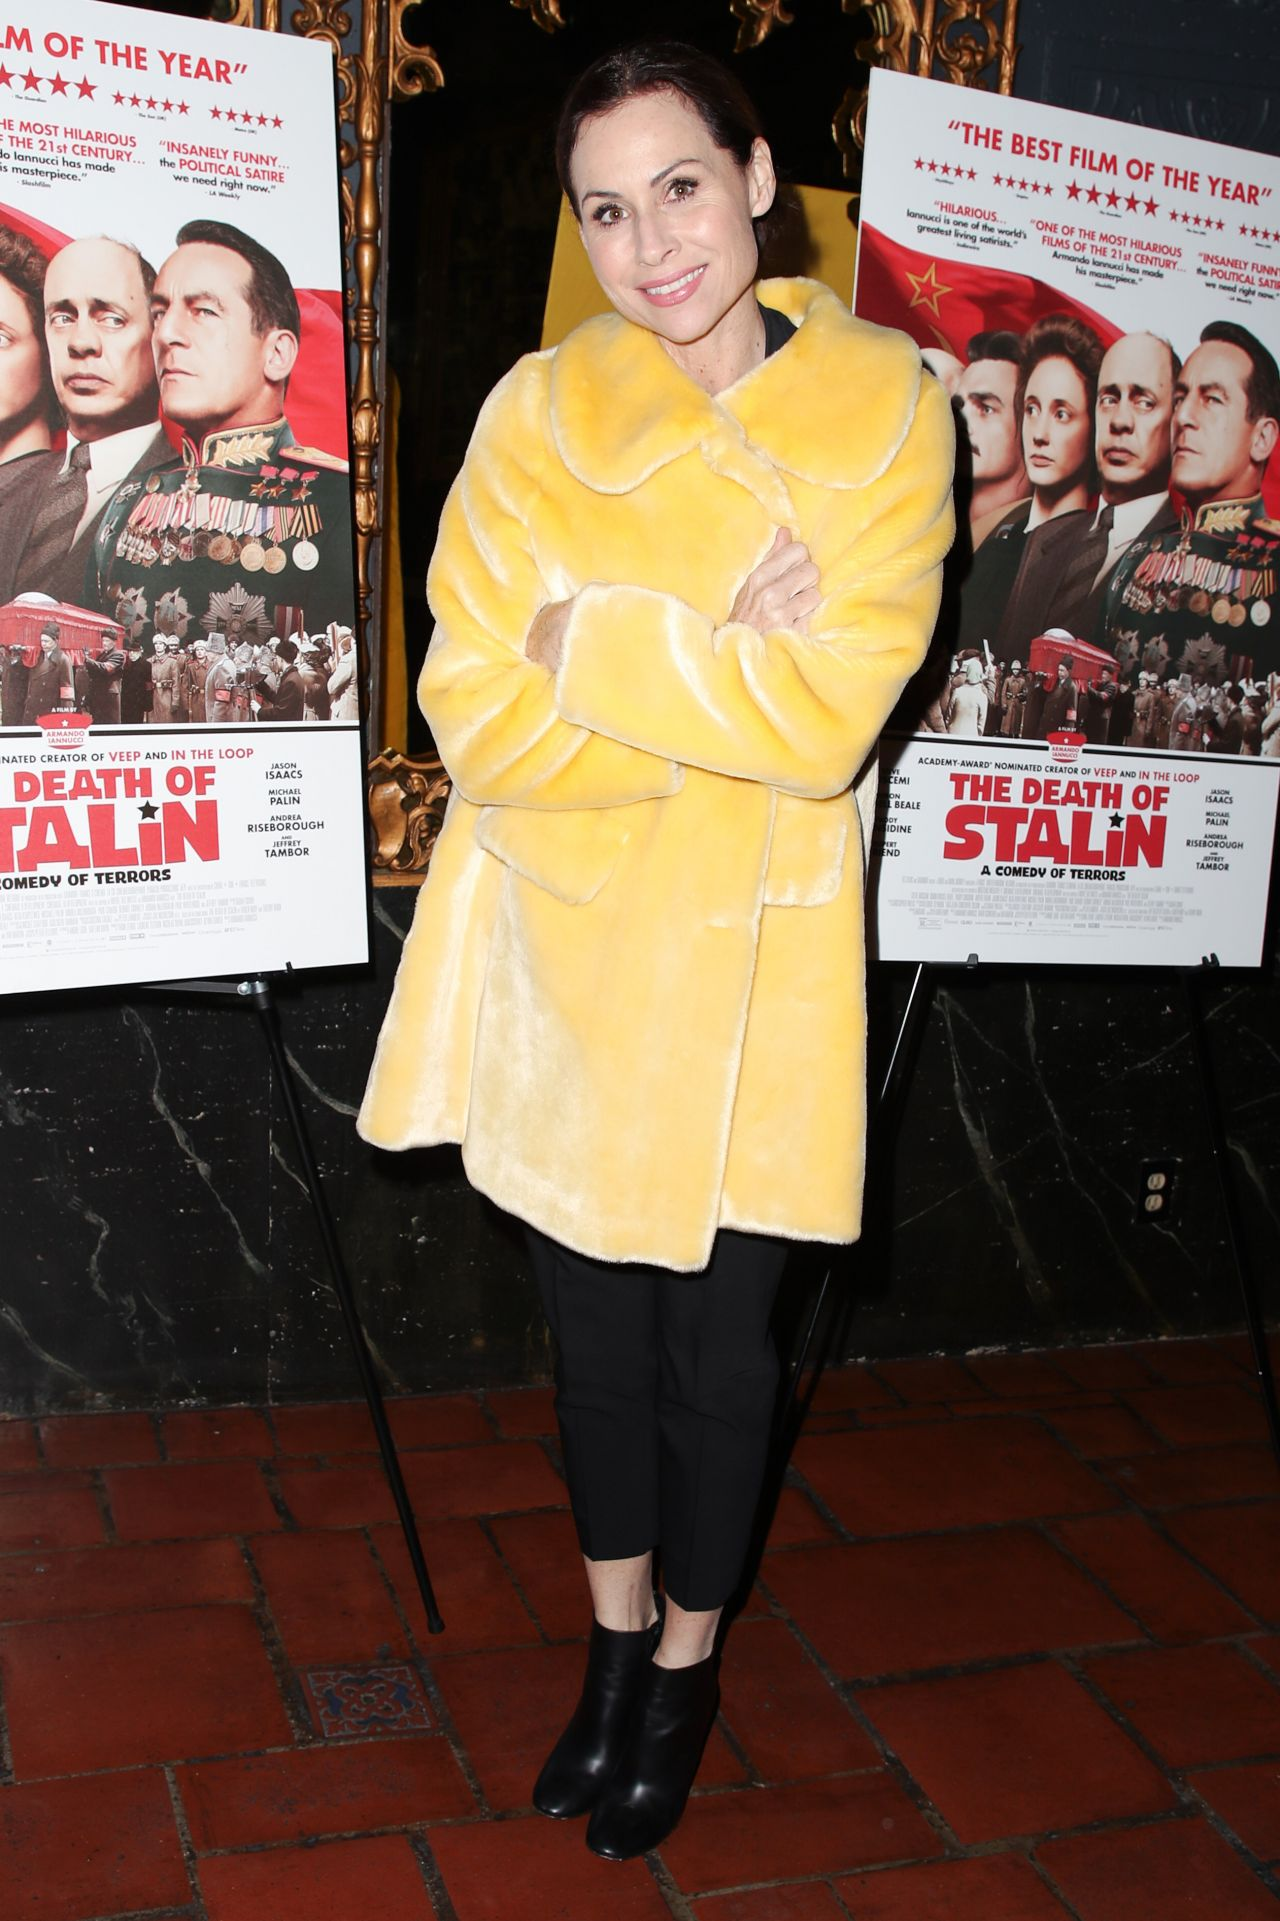 https://celebmafia.com/wp-content/uploads/2018/03/minnie-driver-the-death-of-stalin-premiere-in-los-angeles-0.jpg